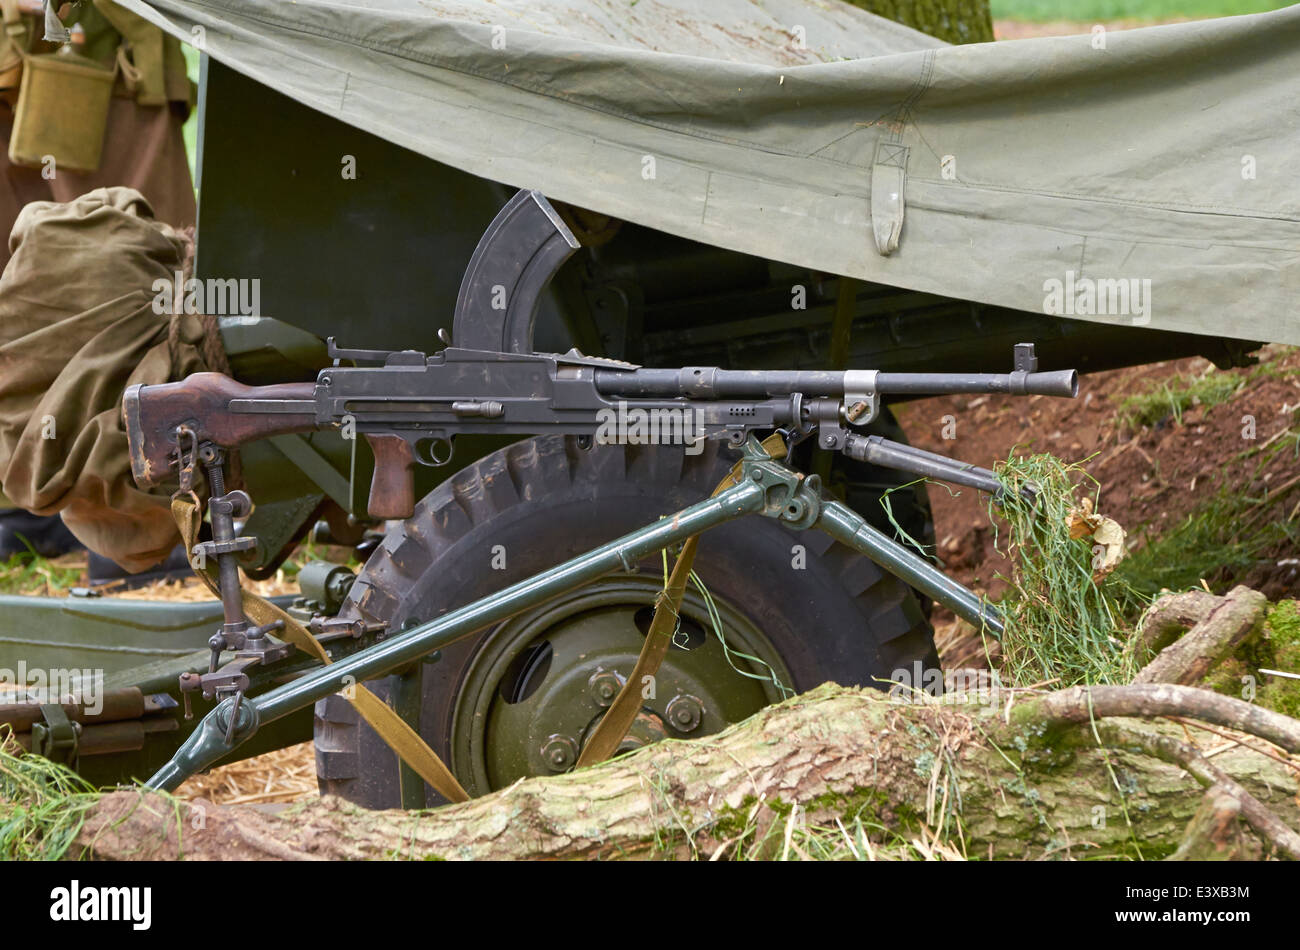 WW2 Bren gun, a British Army light machine gun used from the 1930s to the 1990s set up in a field gun emplacement. - Stock Image